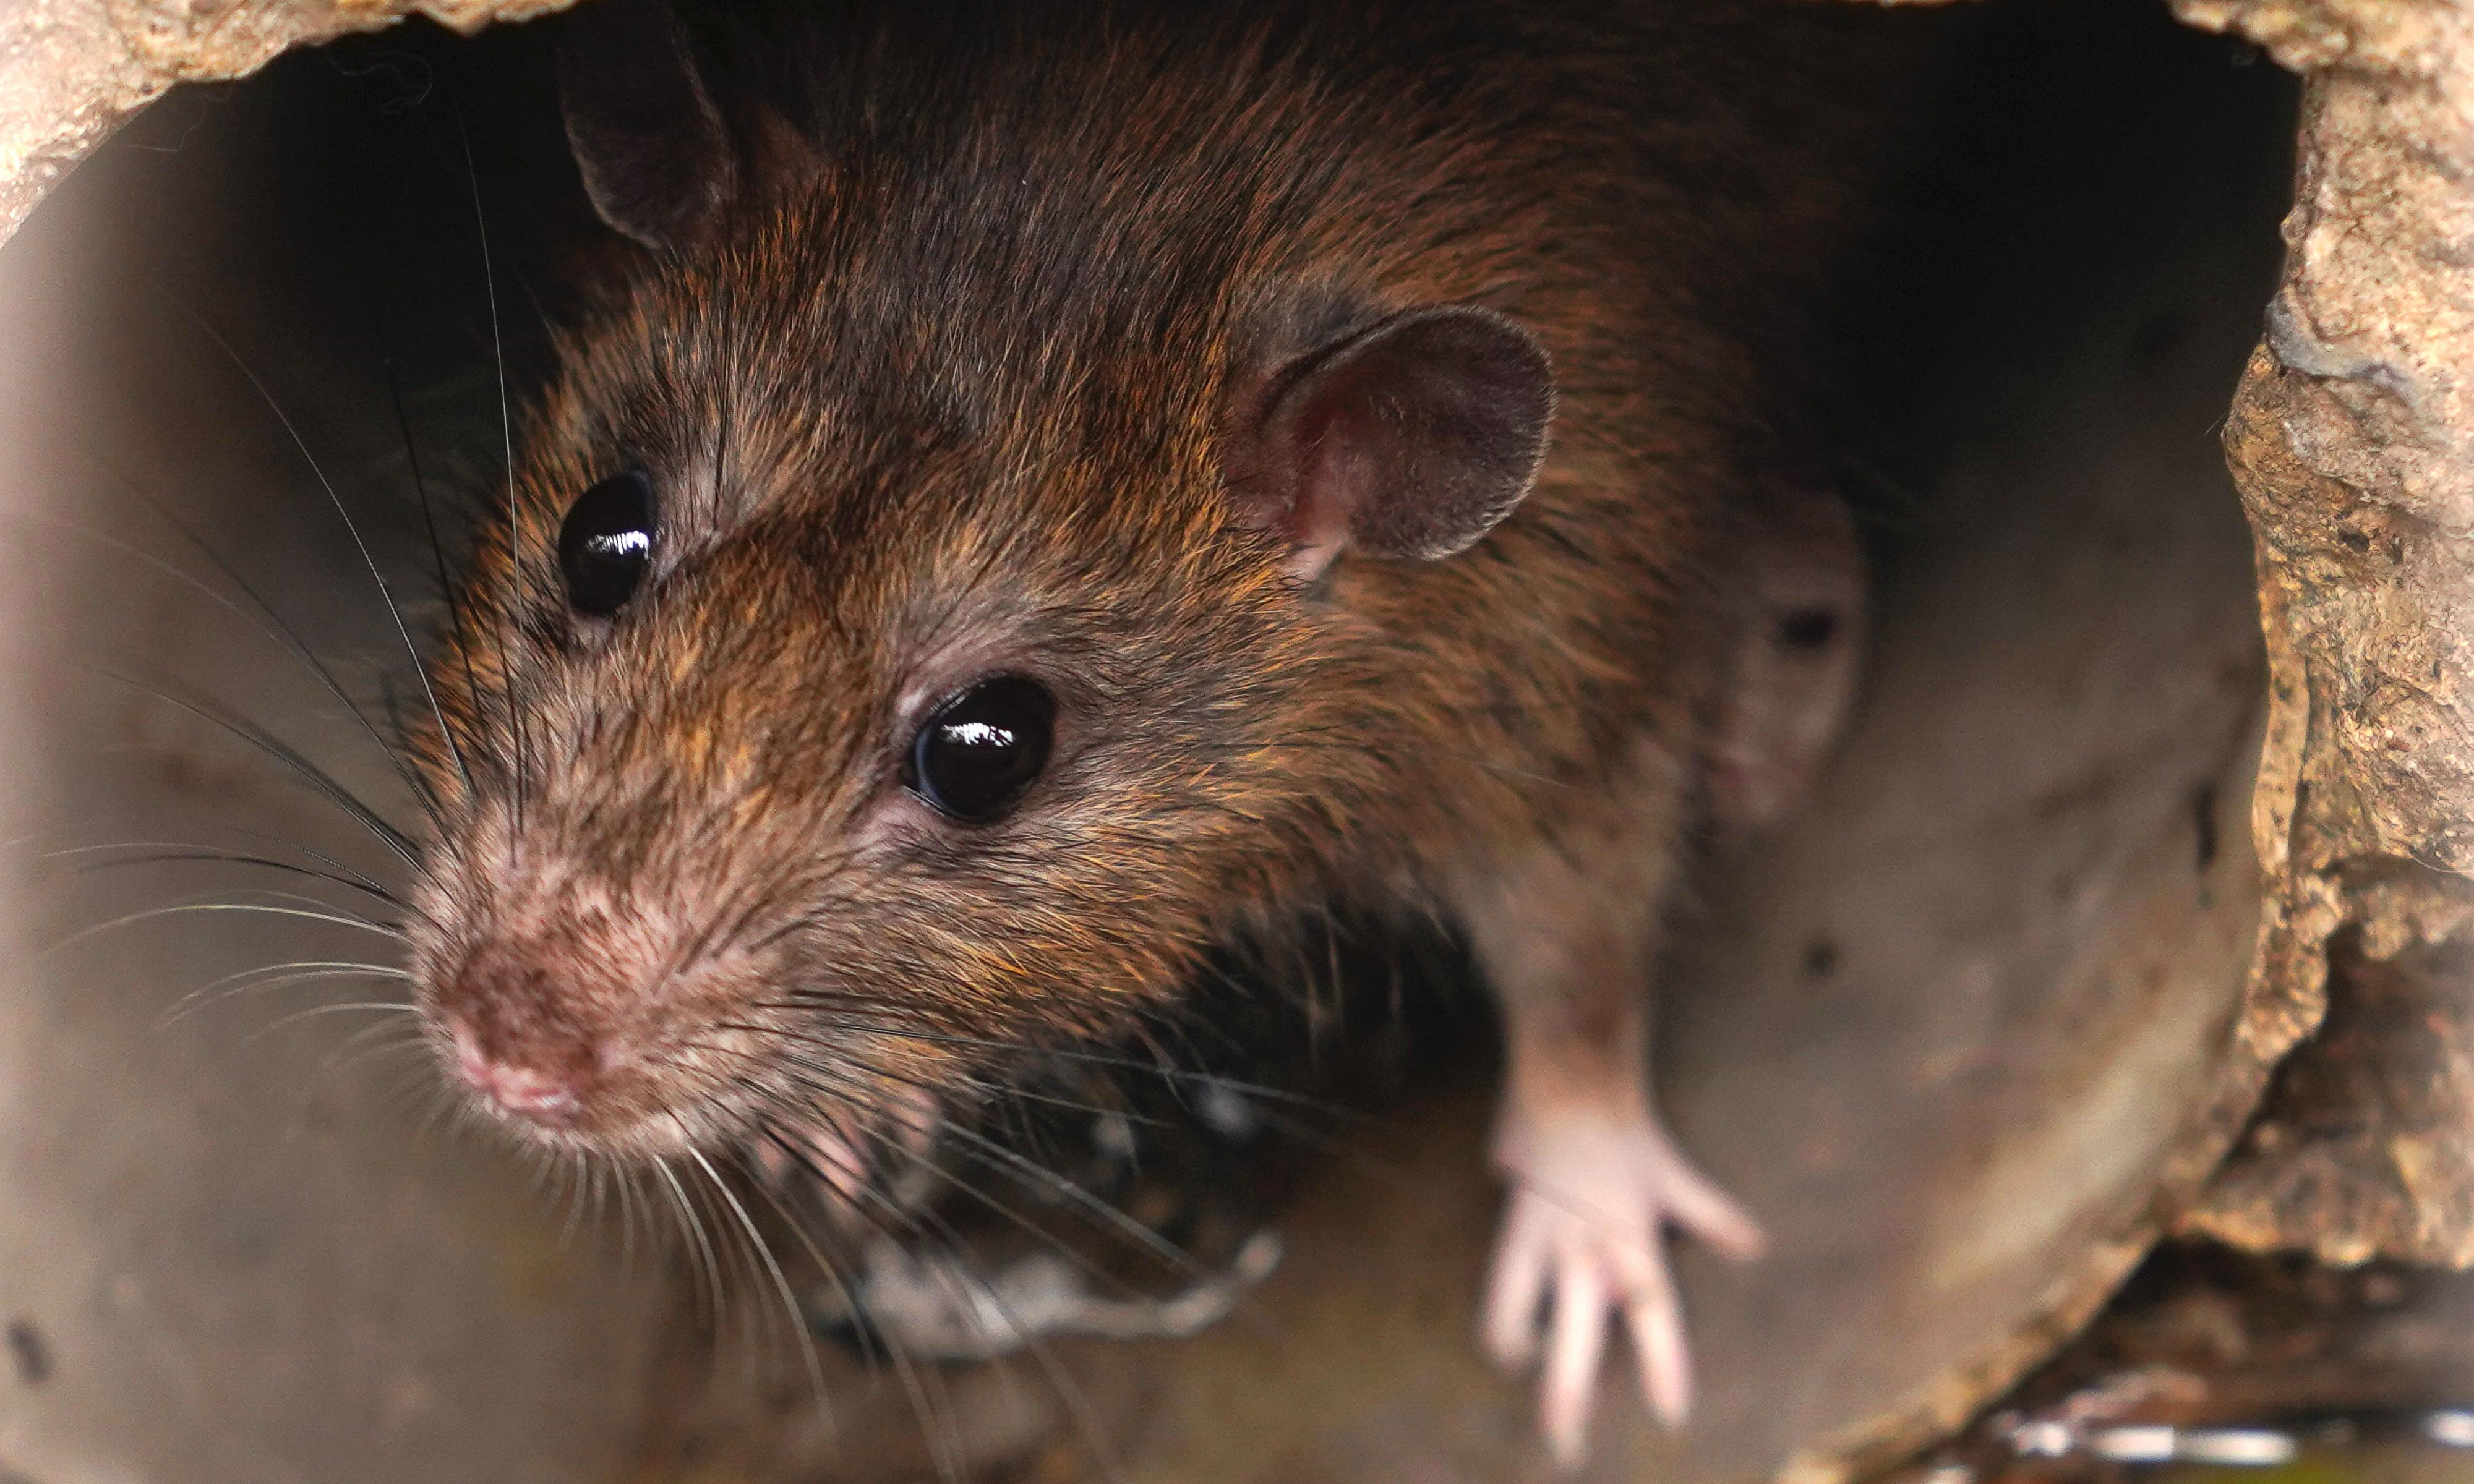 Giggles and 'joy jumps': rats love games of hide and squeak, scientists find